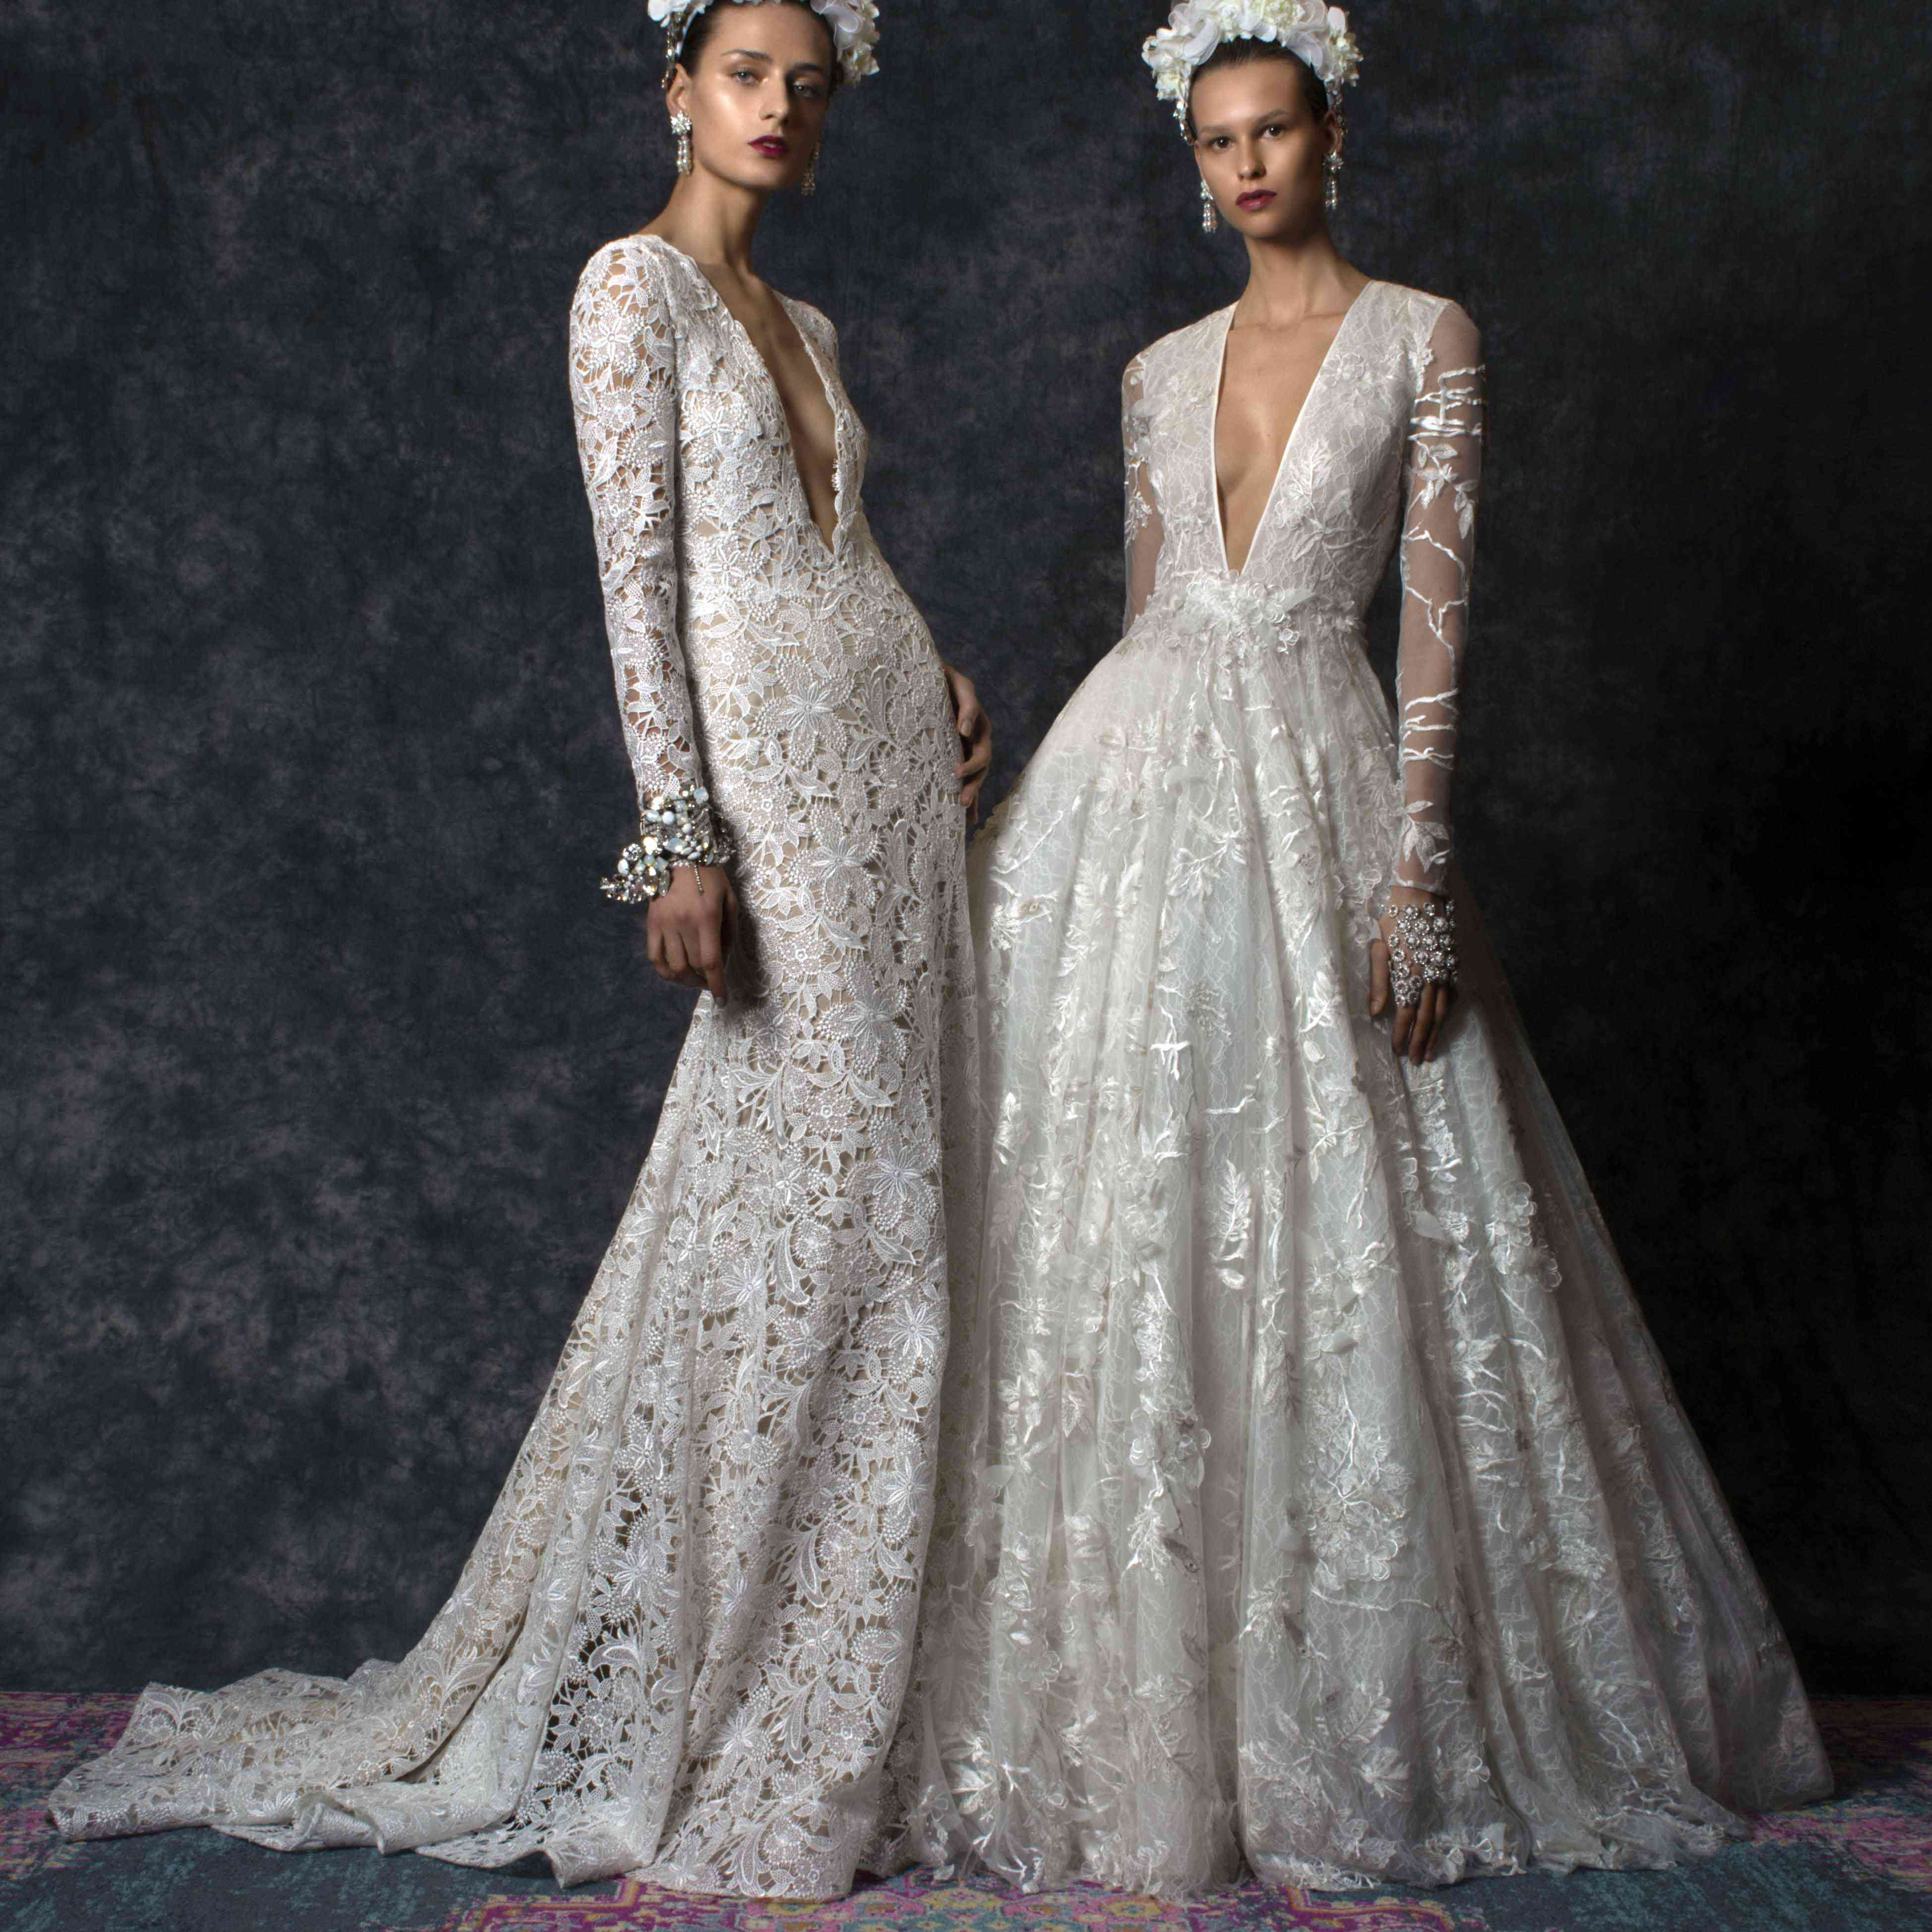 Two models side by side in long-sleeve floral wedding gowns